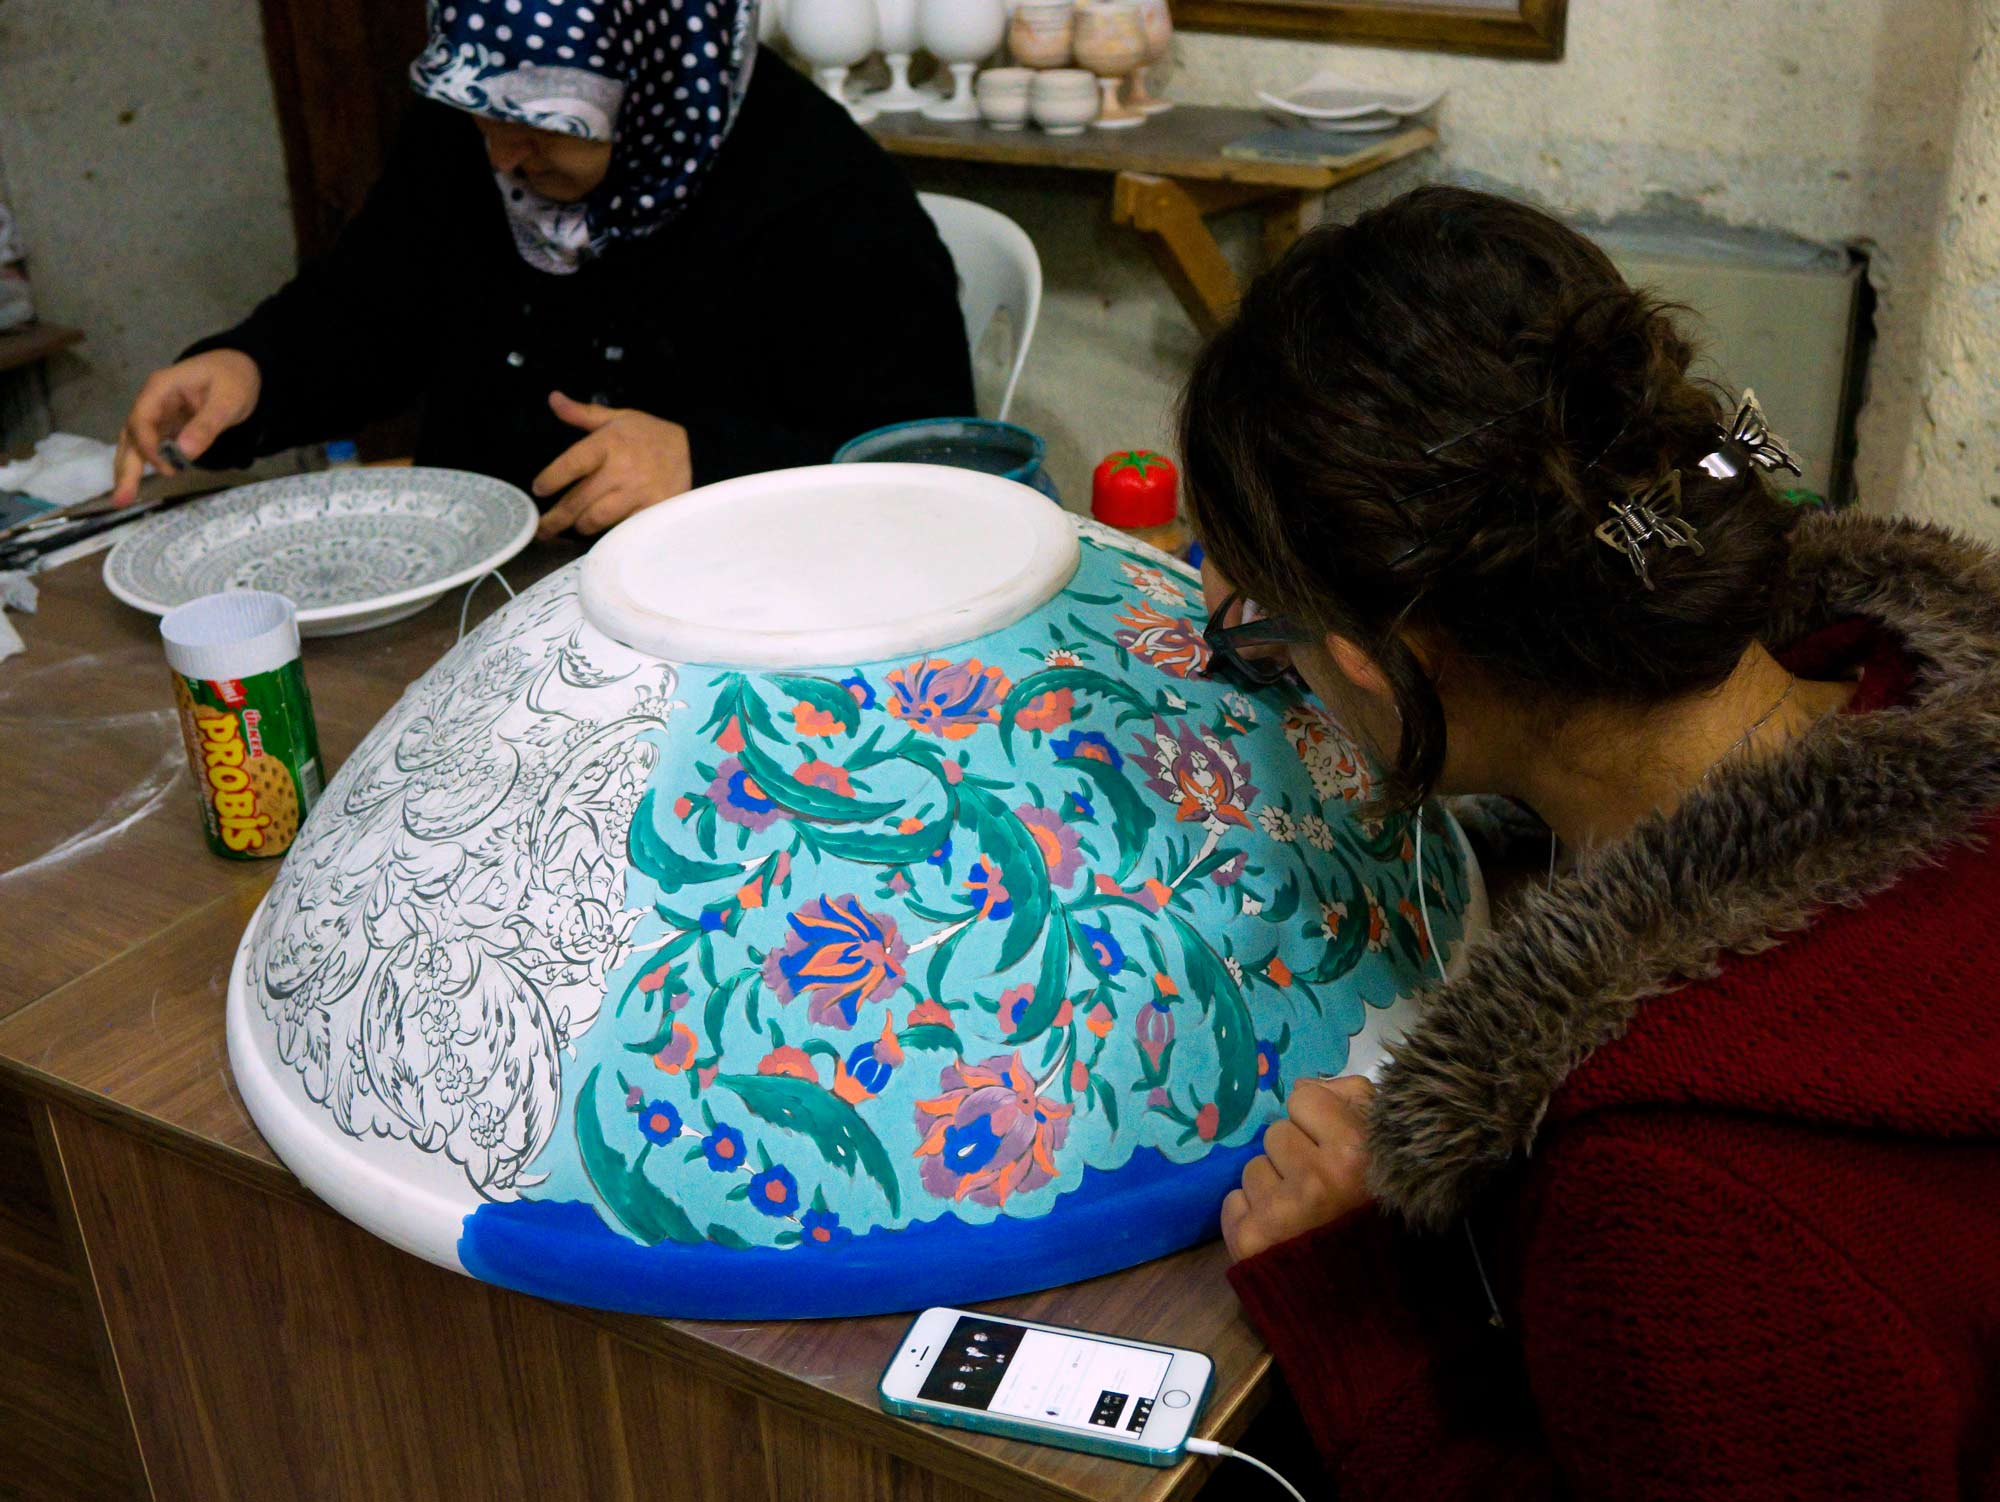 travel-turk-workshop-decobowl.jpg